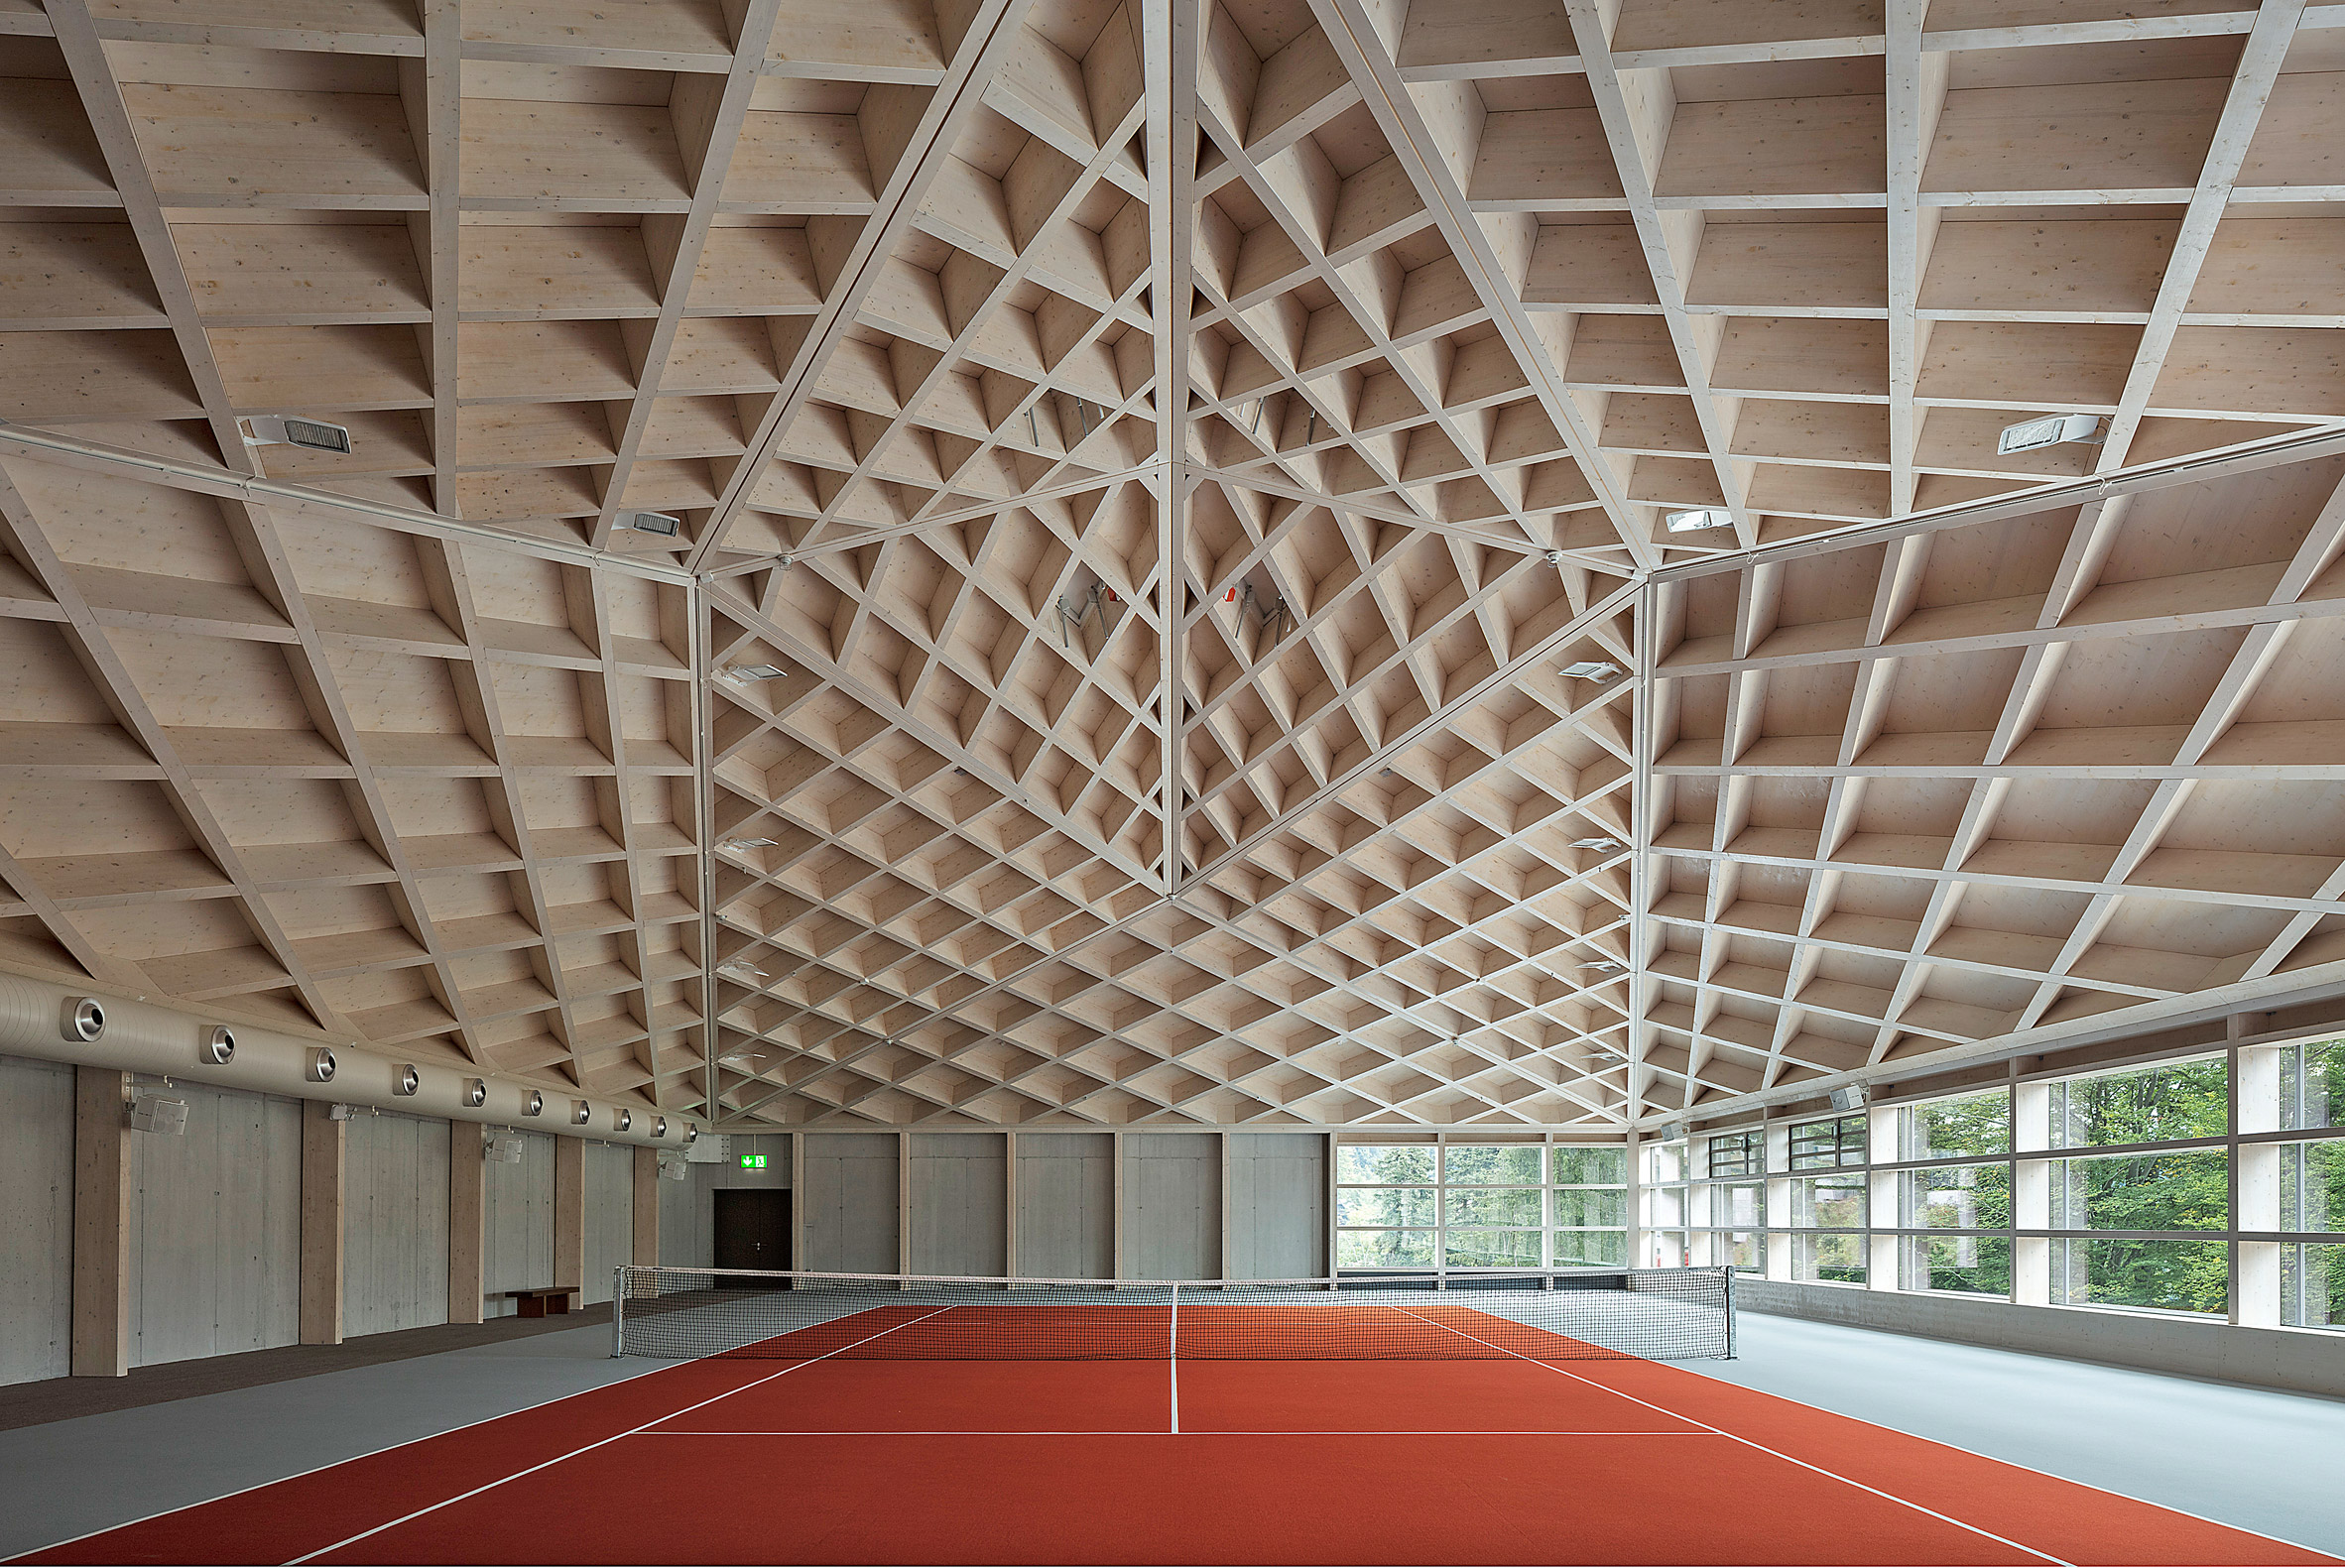 Ceiling of Diamond Domes tennis courts designed by Rüssli Architekten with CLT roofs by Neue Holzbau in the Swiss Alps